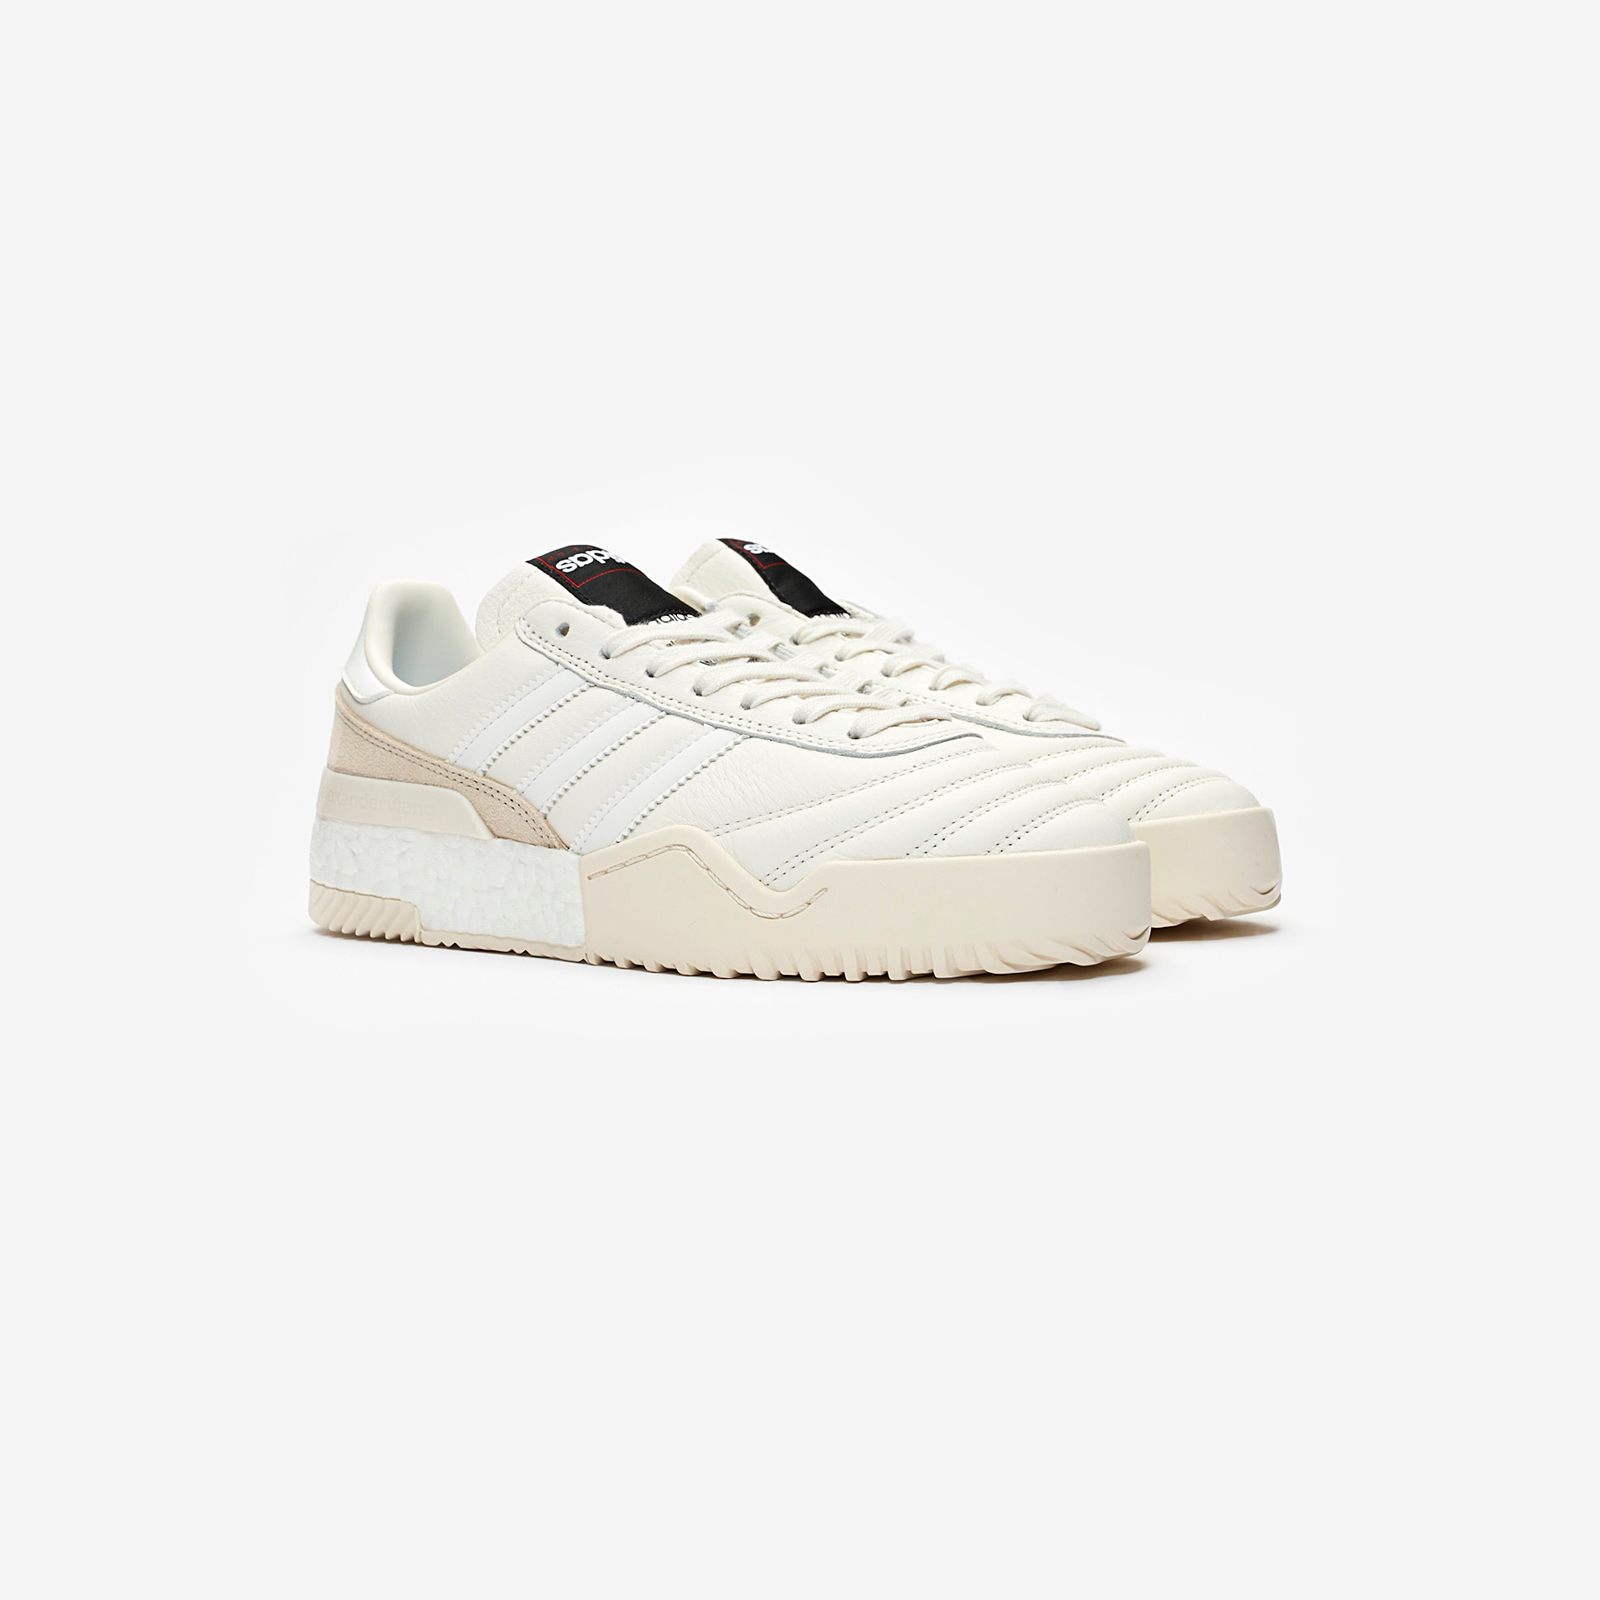 adidas AW Soccer Bball Ee8498 Sneakersnstuff   sneakers